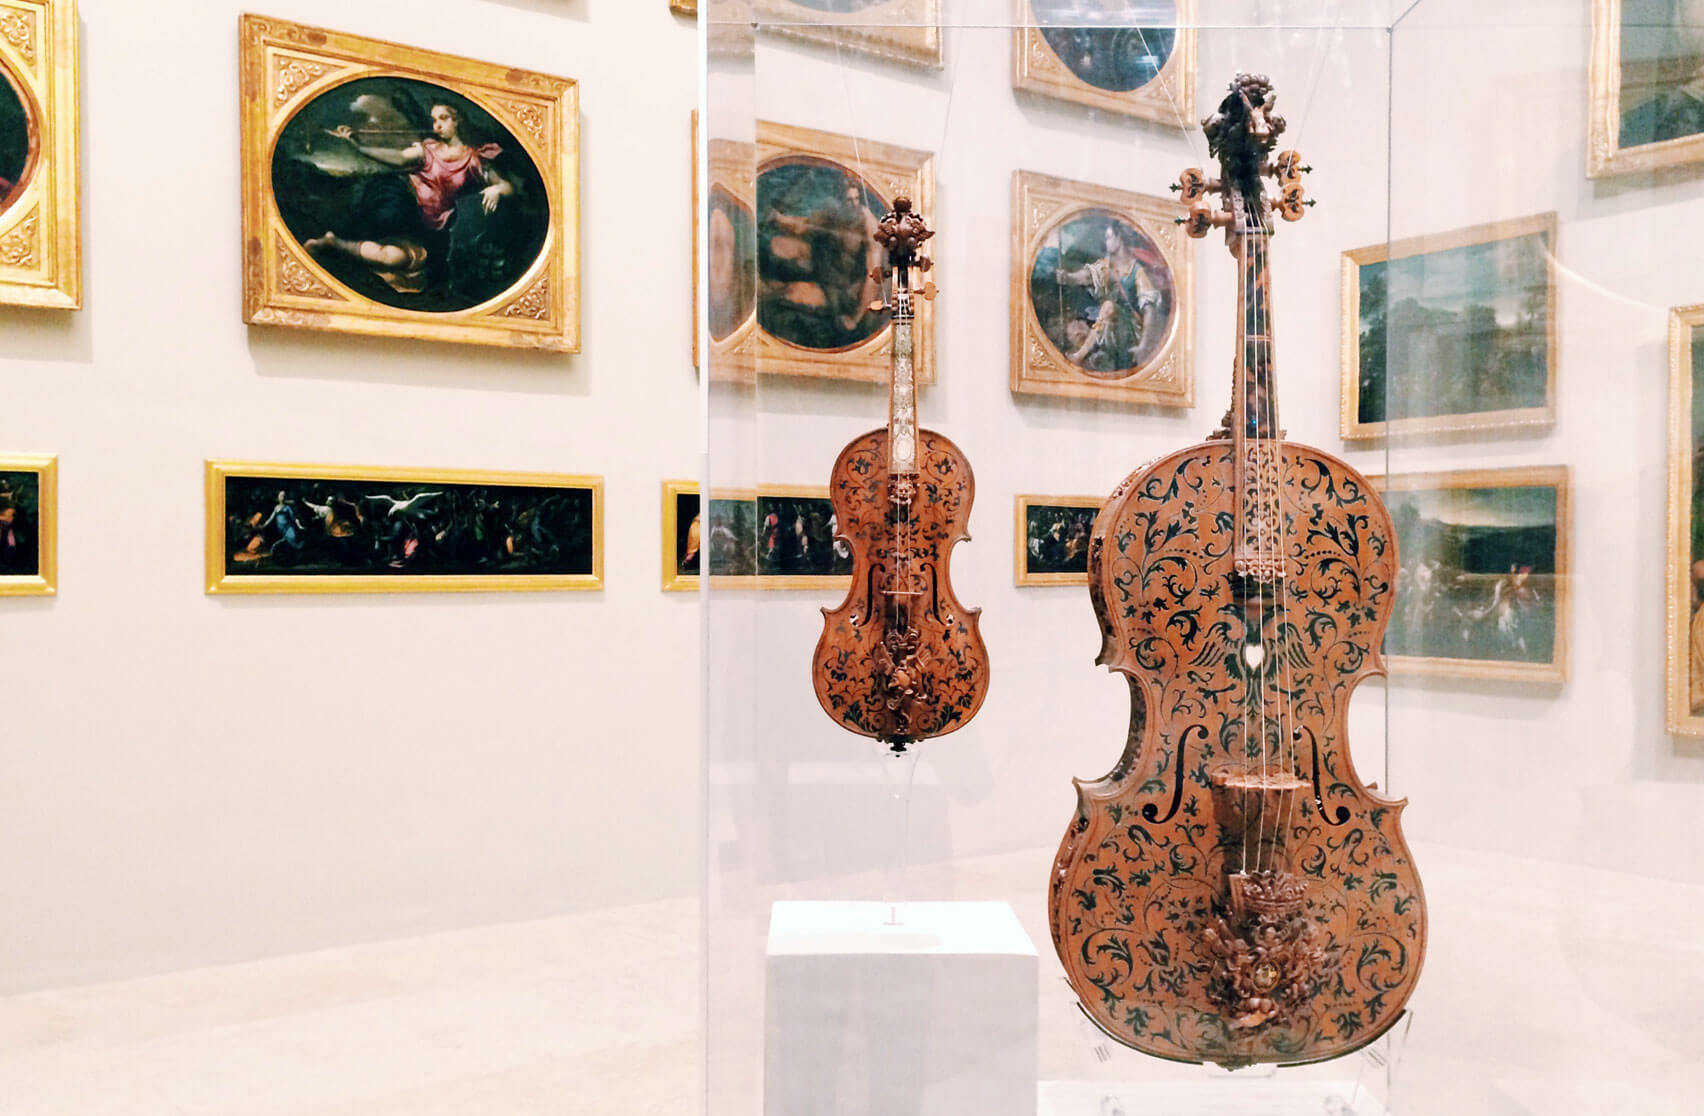 Estense Gallery in Modena - Cello and Violin, made of maple wood by luthier Domenico Galli,